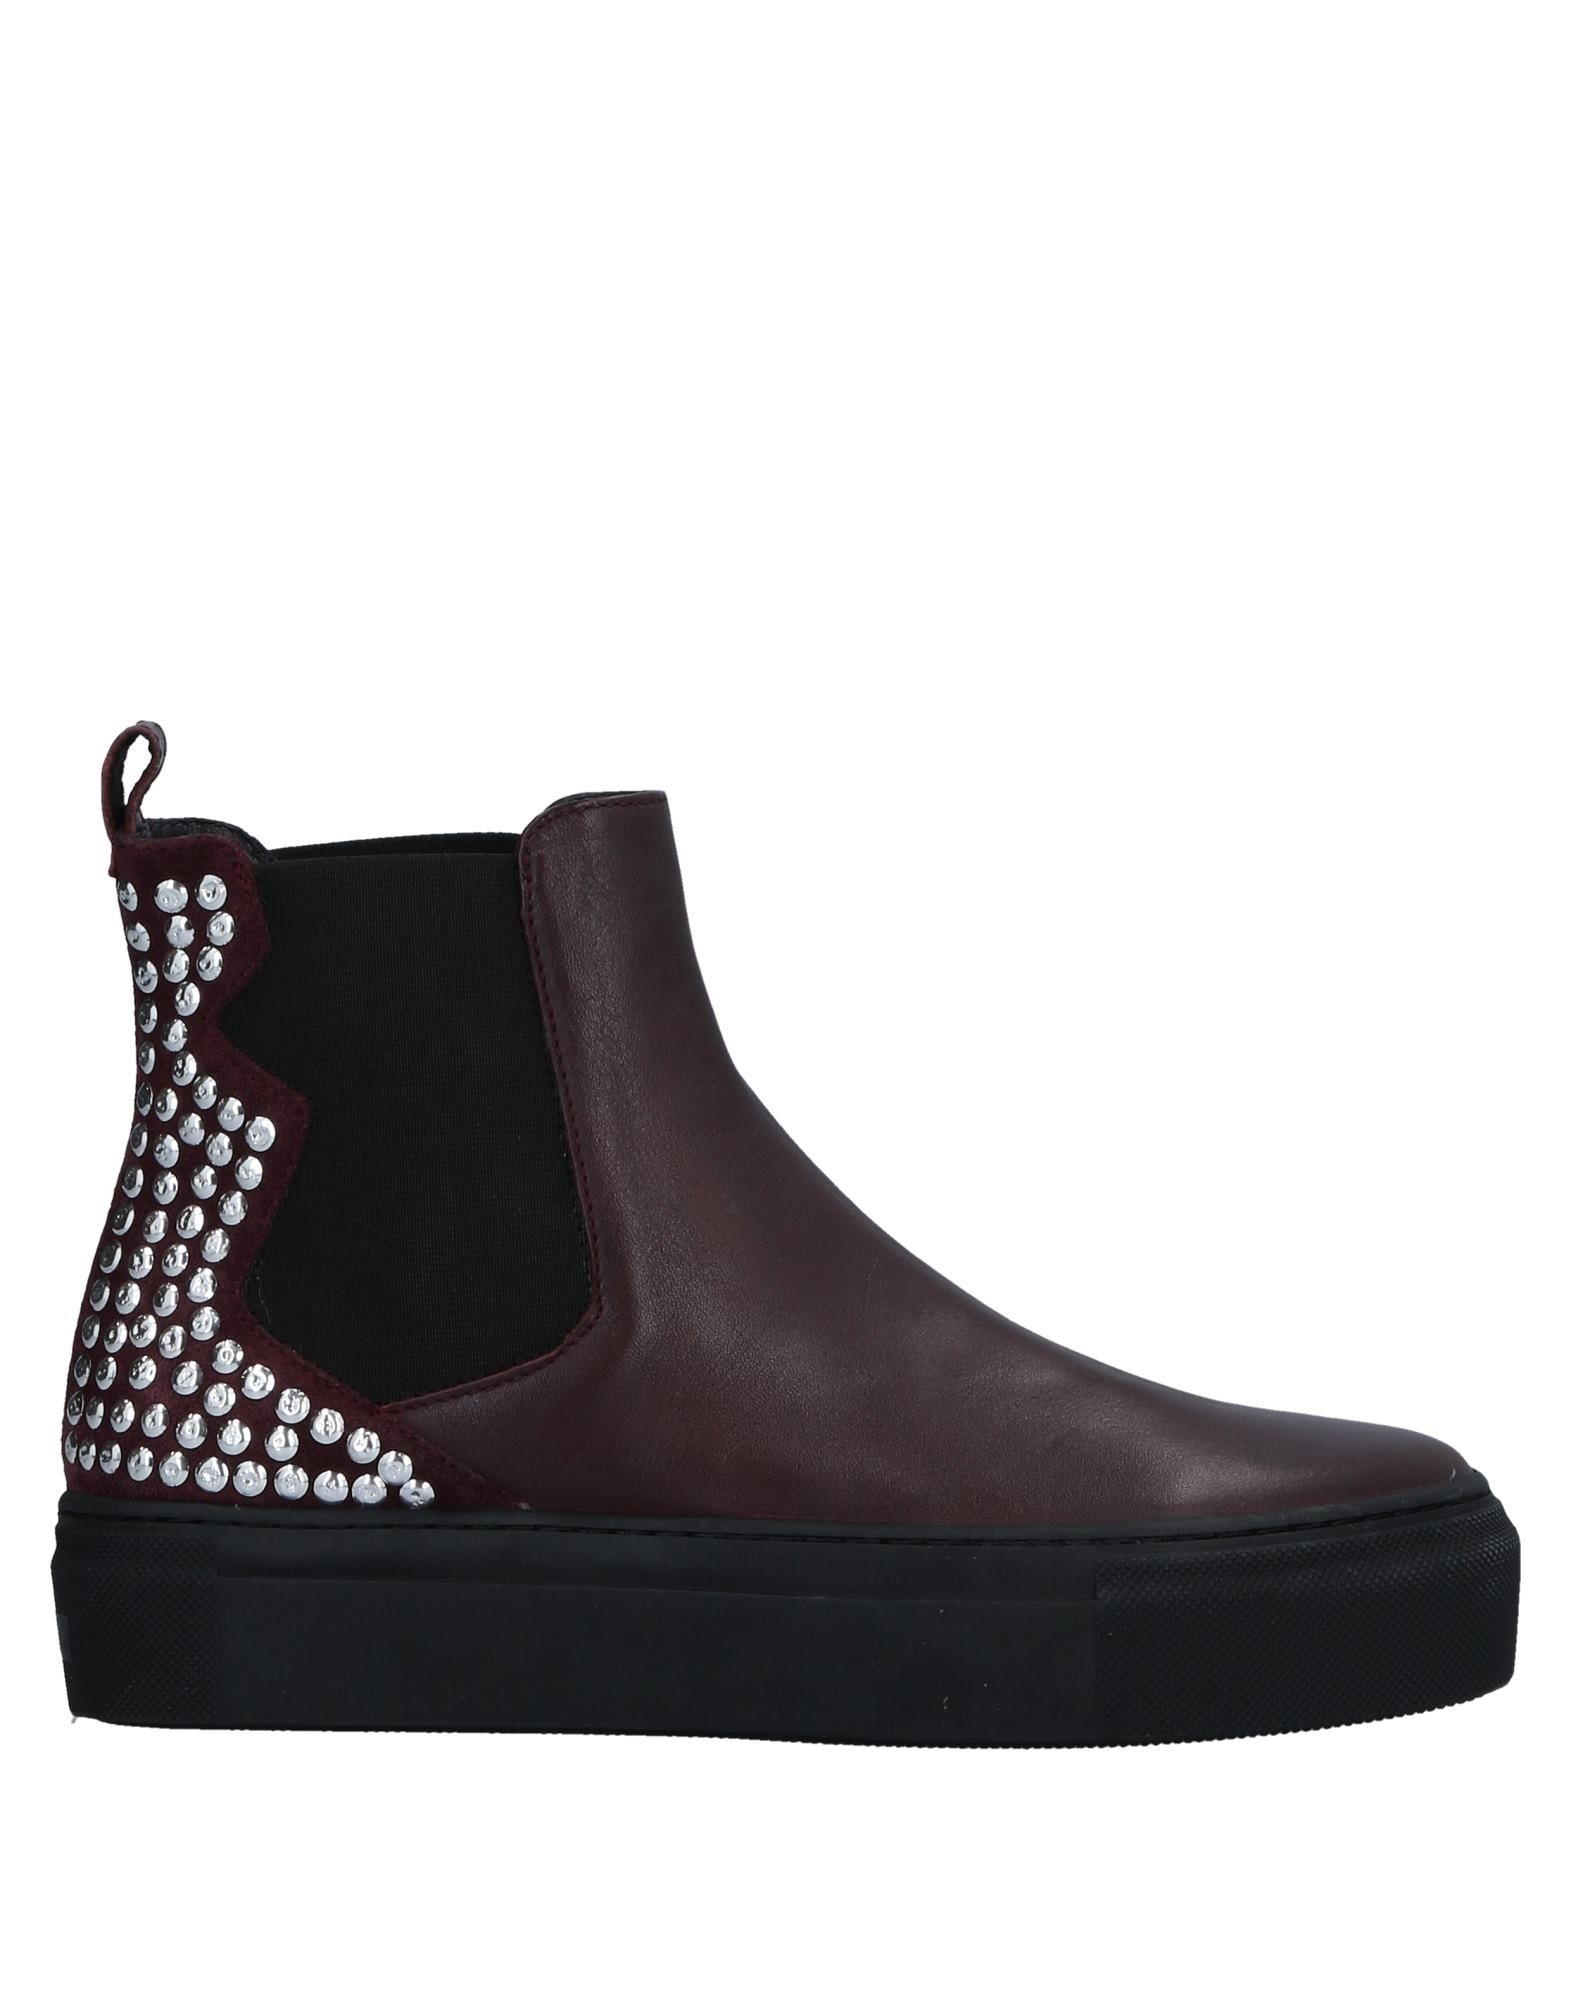 Chelsea Boots 11518333SX Janet Sport Donna - 11518333SX Boots 4f7a99